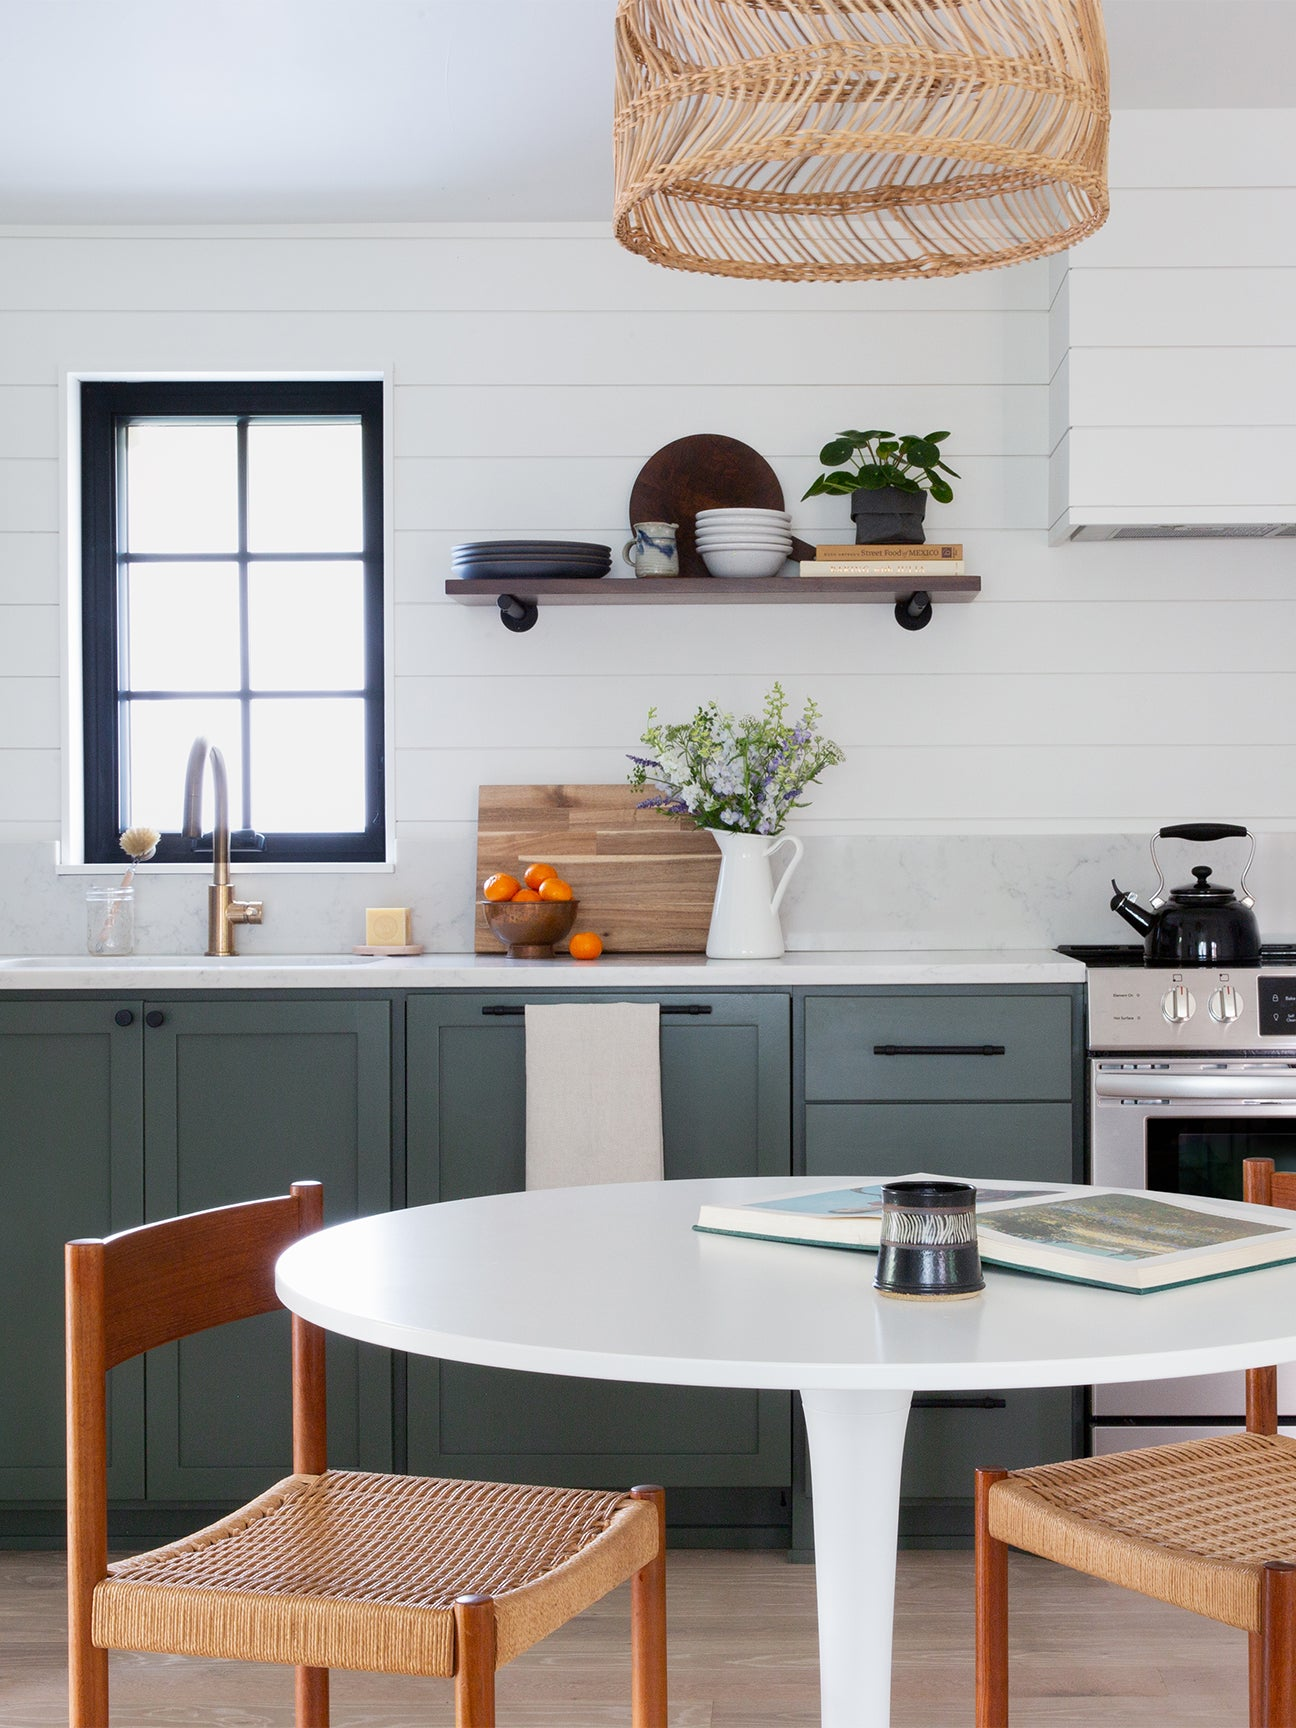 Kitchen with open shelving.